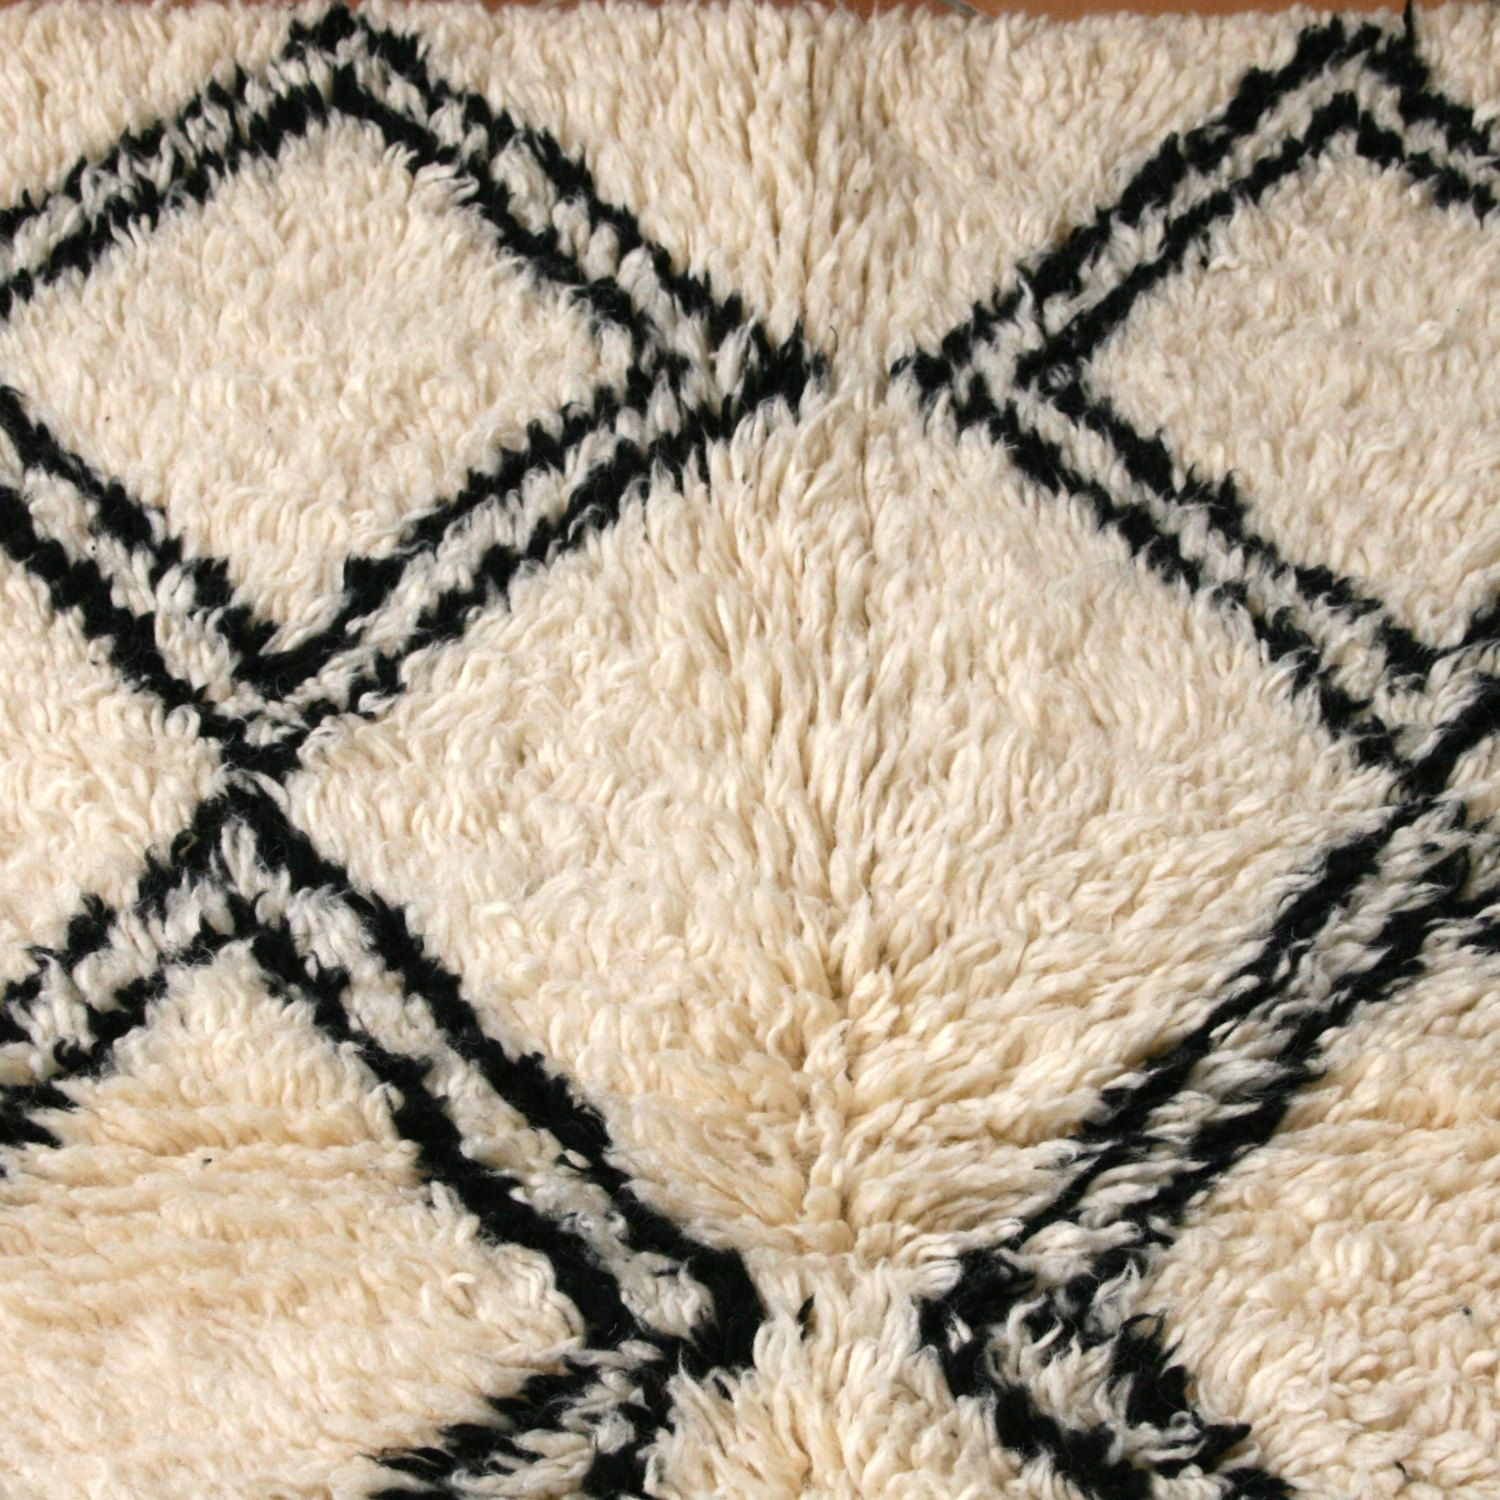 BENI OURAIN Moroccan Berber Tribal Wool Rug Hand Knotted Thick Pile Cream  Diamonds #BEN002 140cmX92cm